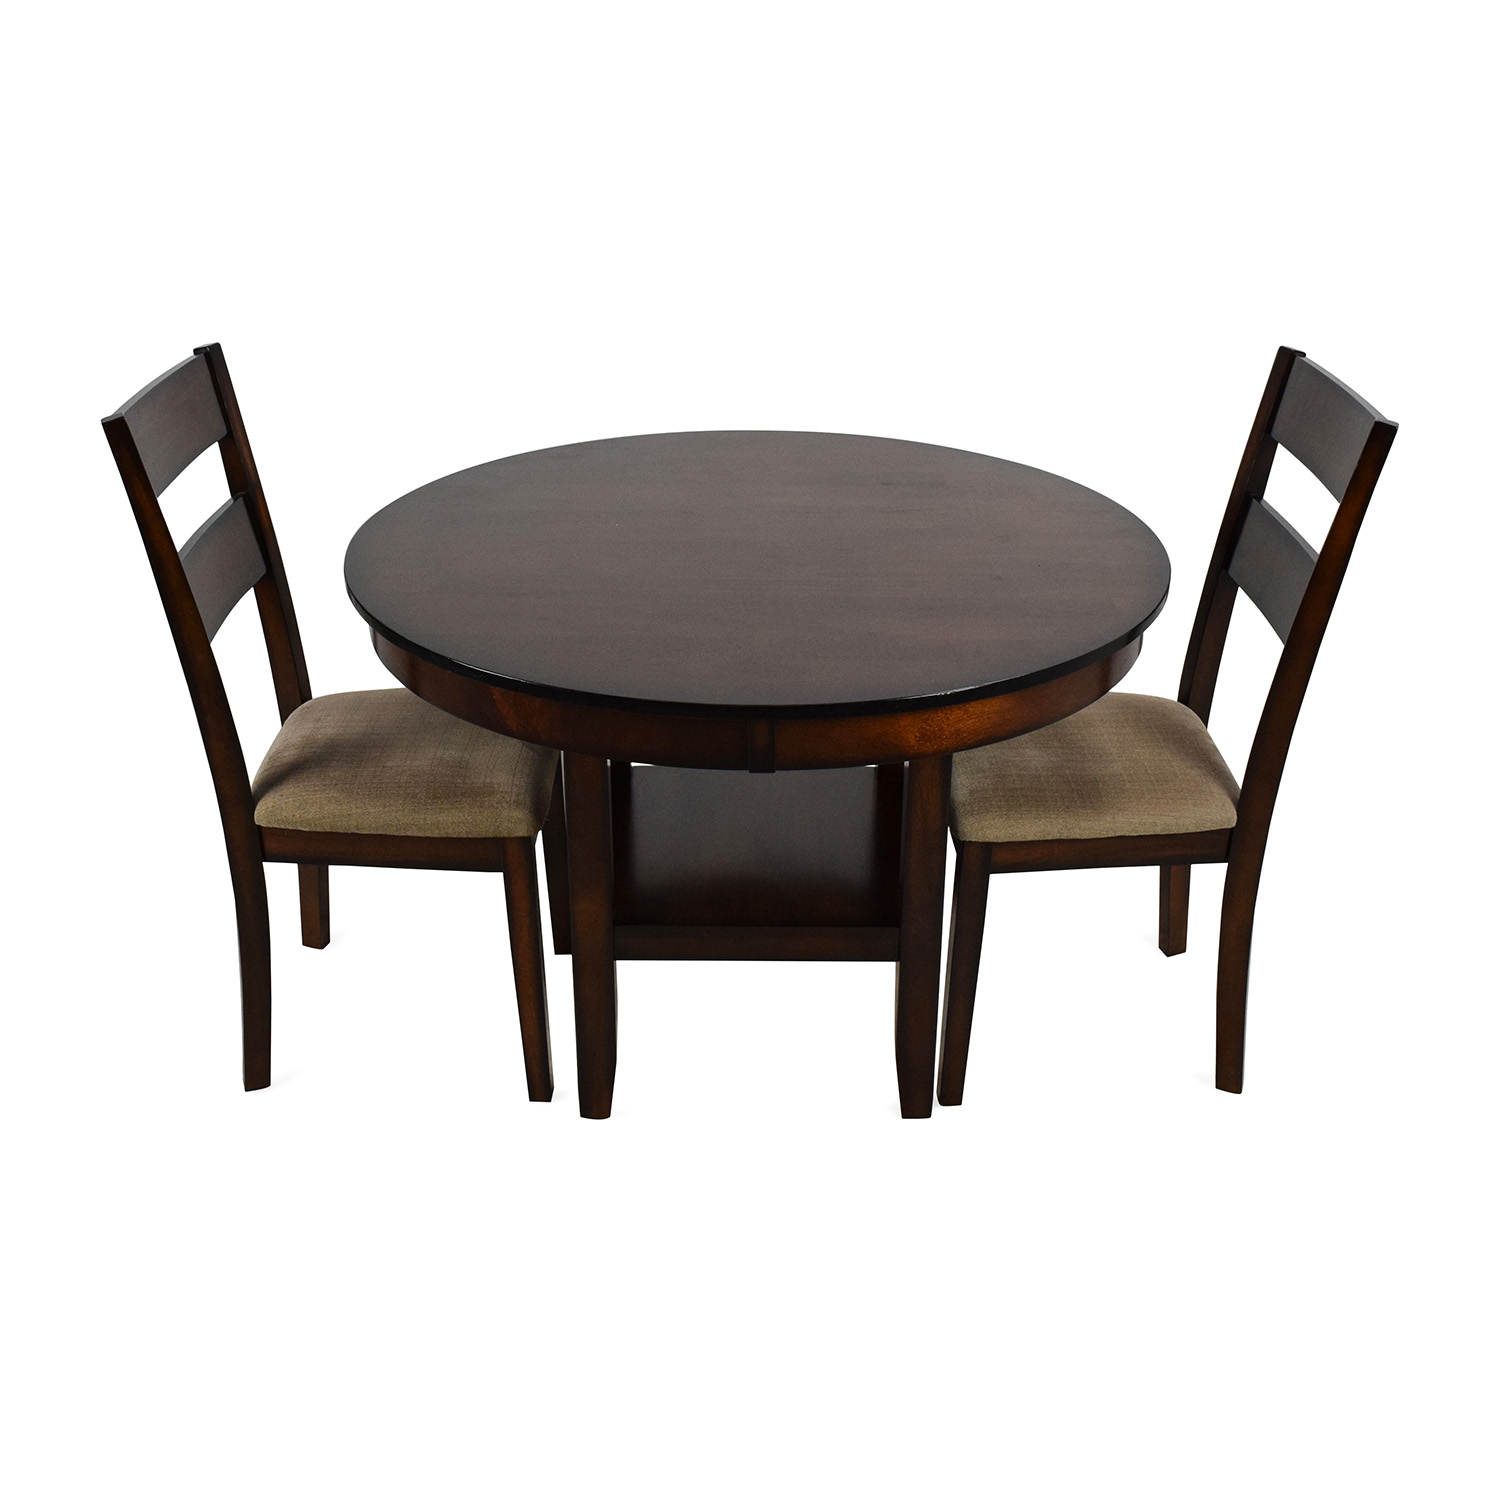 OFF Vortex Tulip Table and Vortex Chair Set Tables